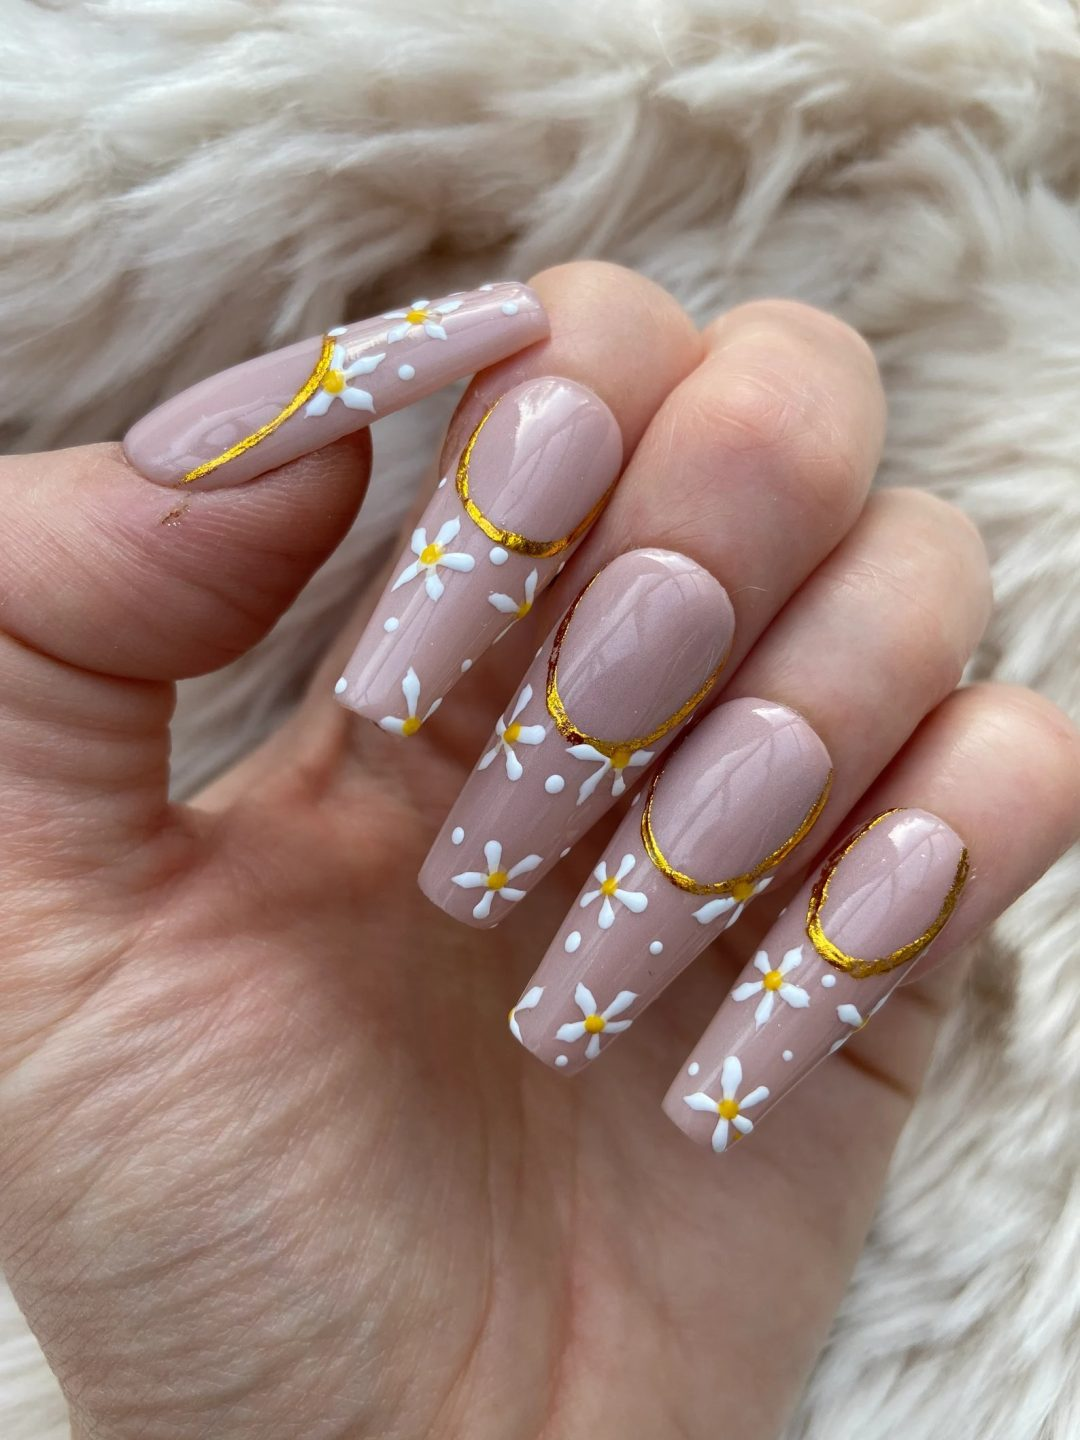 Old rose daisy nails with gold detailing